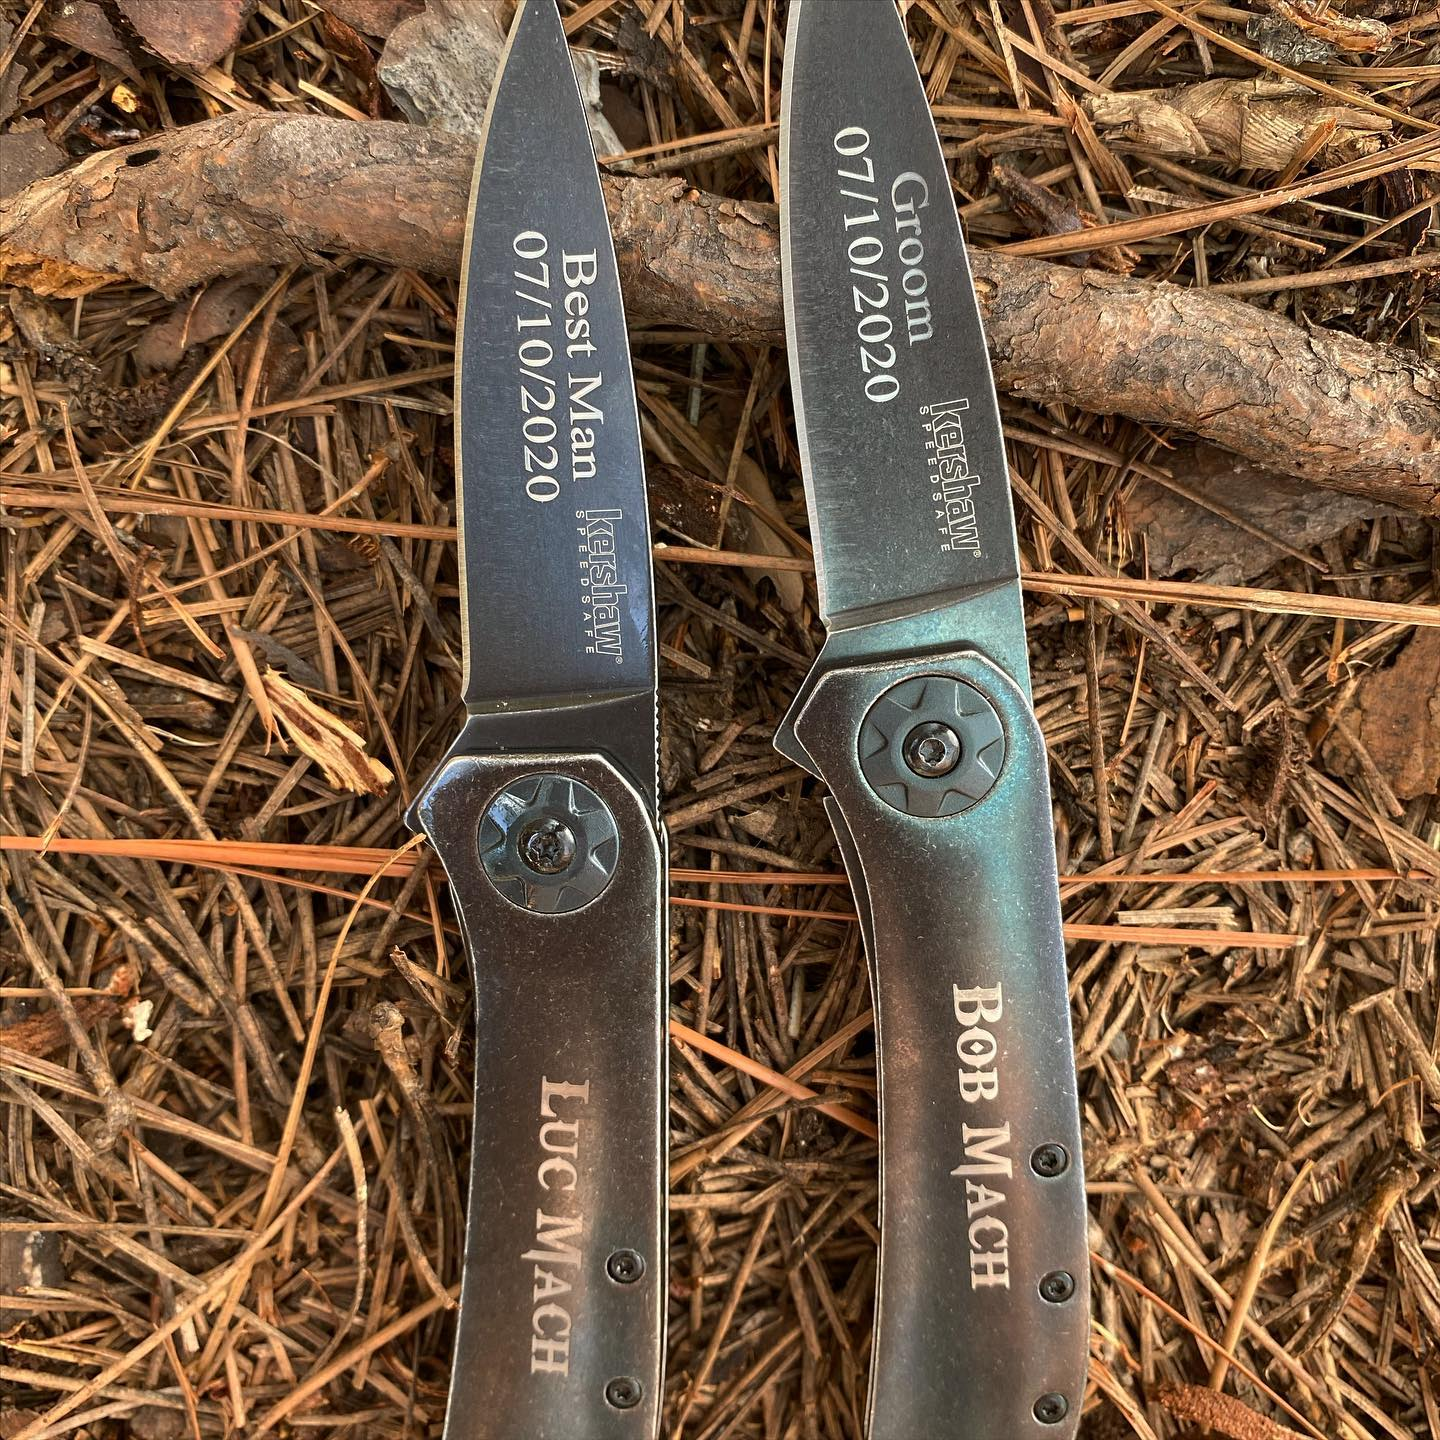 Kershaw Amplitude 3.25 knife 3871BW was just engraved for this Groom. Gods of War font on the handle and Times New Roman font on the blade. Congrats to this groom and bride! #amplitude #kershawamplitude #groomsmengift #groomsmengiftideas #3871BW